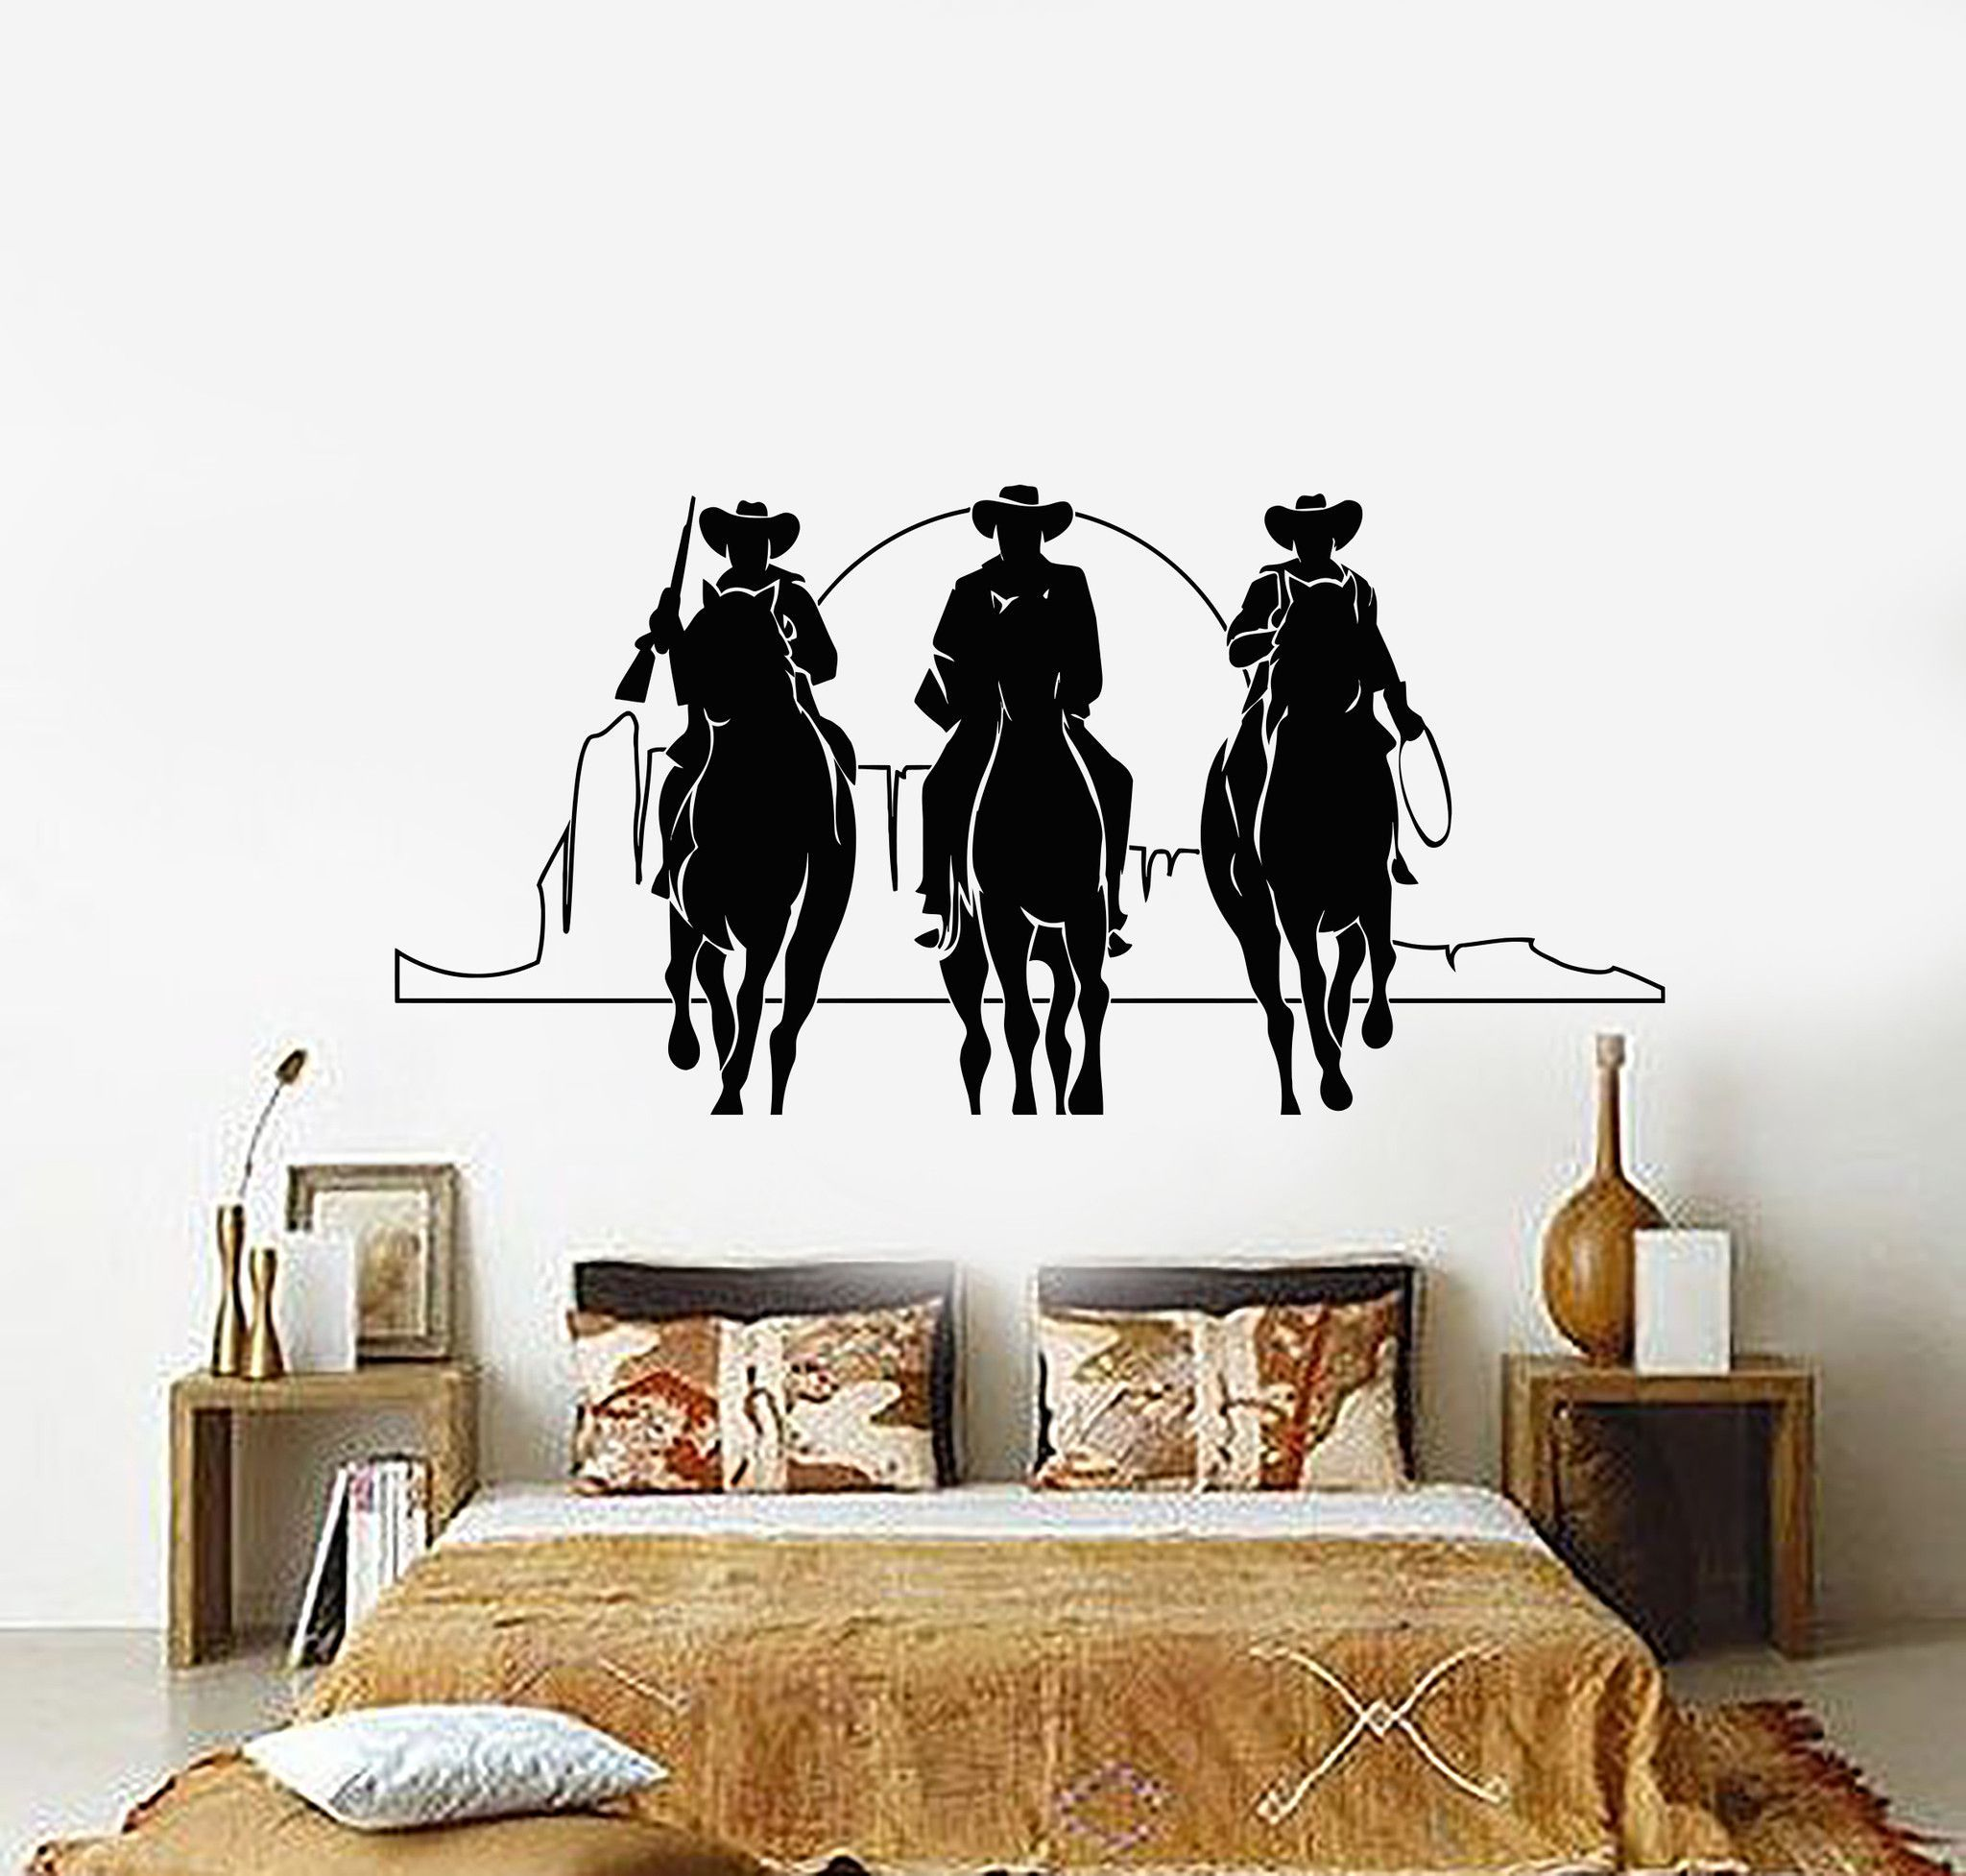 Vinyl wall decal western cowboys horses sunset movie cinema vinyl wall decal western cowboys horses sunset movie cinema stickers 901ig amipublicfo Images